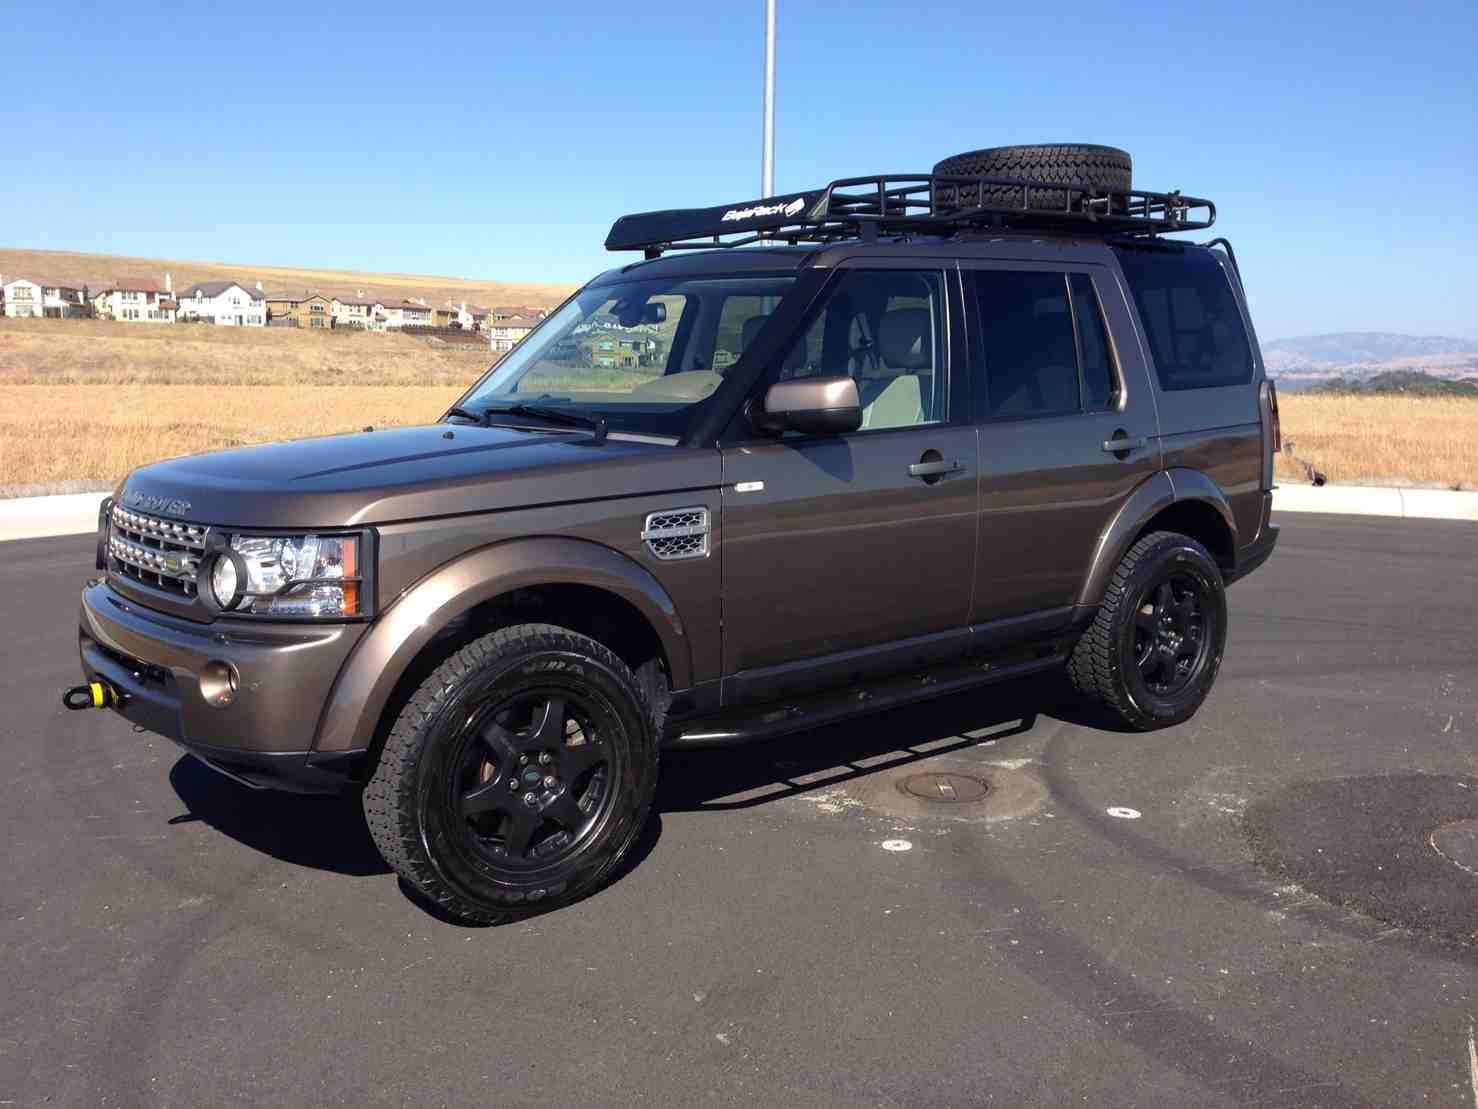 2010 Lr4 Hse Lux For Sale 45k W Lots Of Extras Land Rover Range Rover Sport Land Rover Discovery